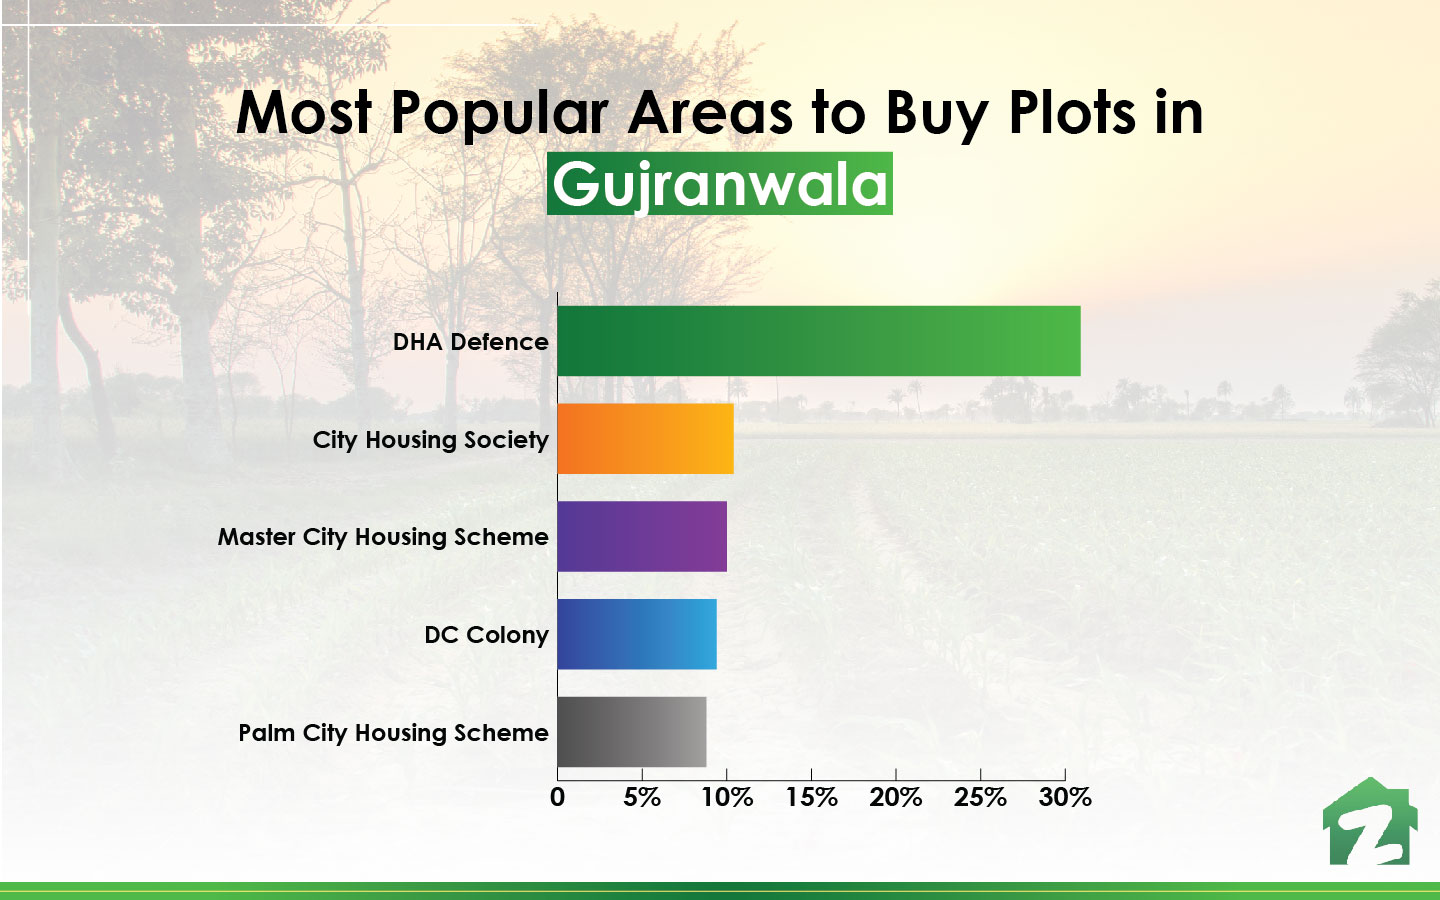 famous areas to buy plots in Gujranwala